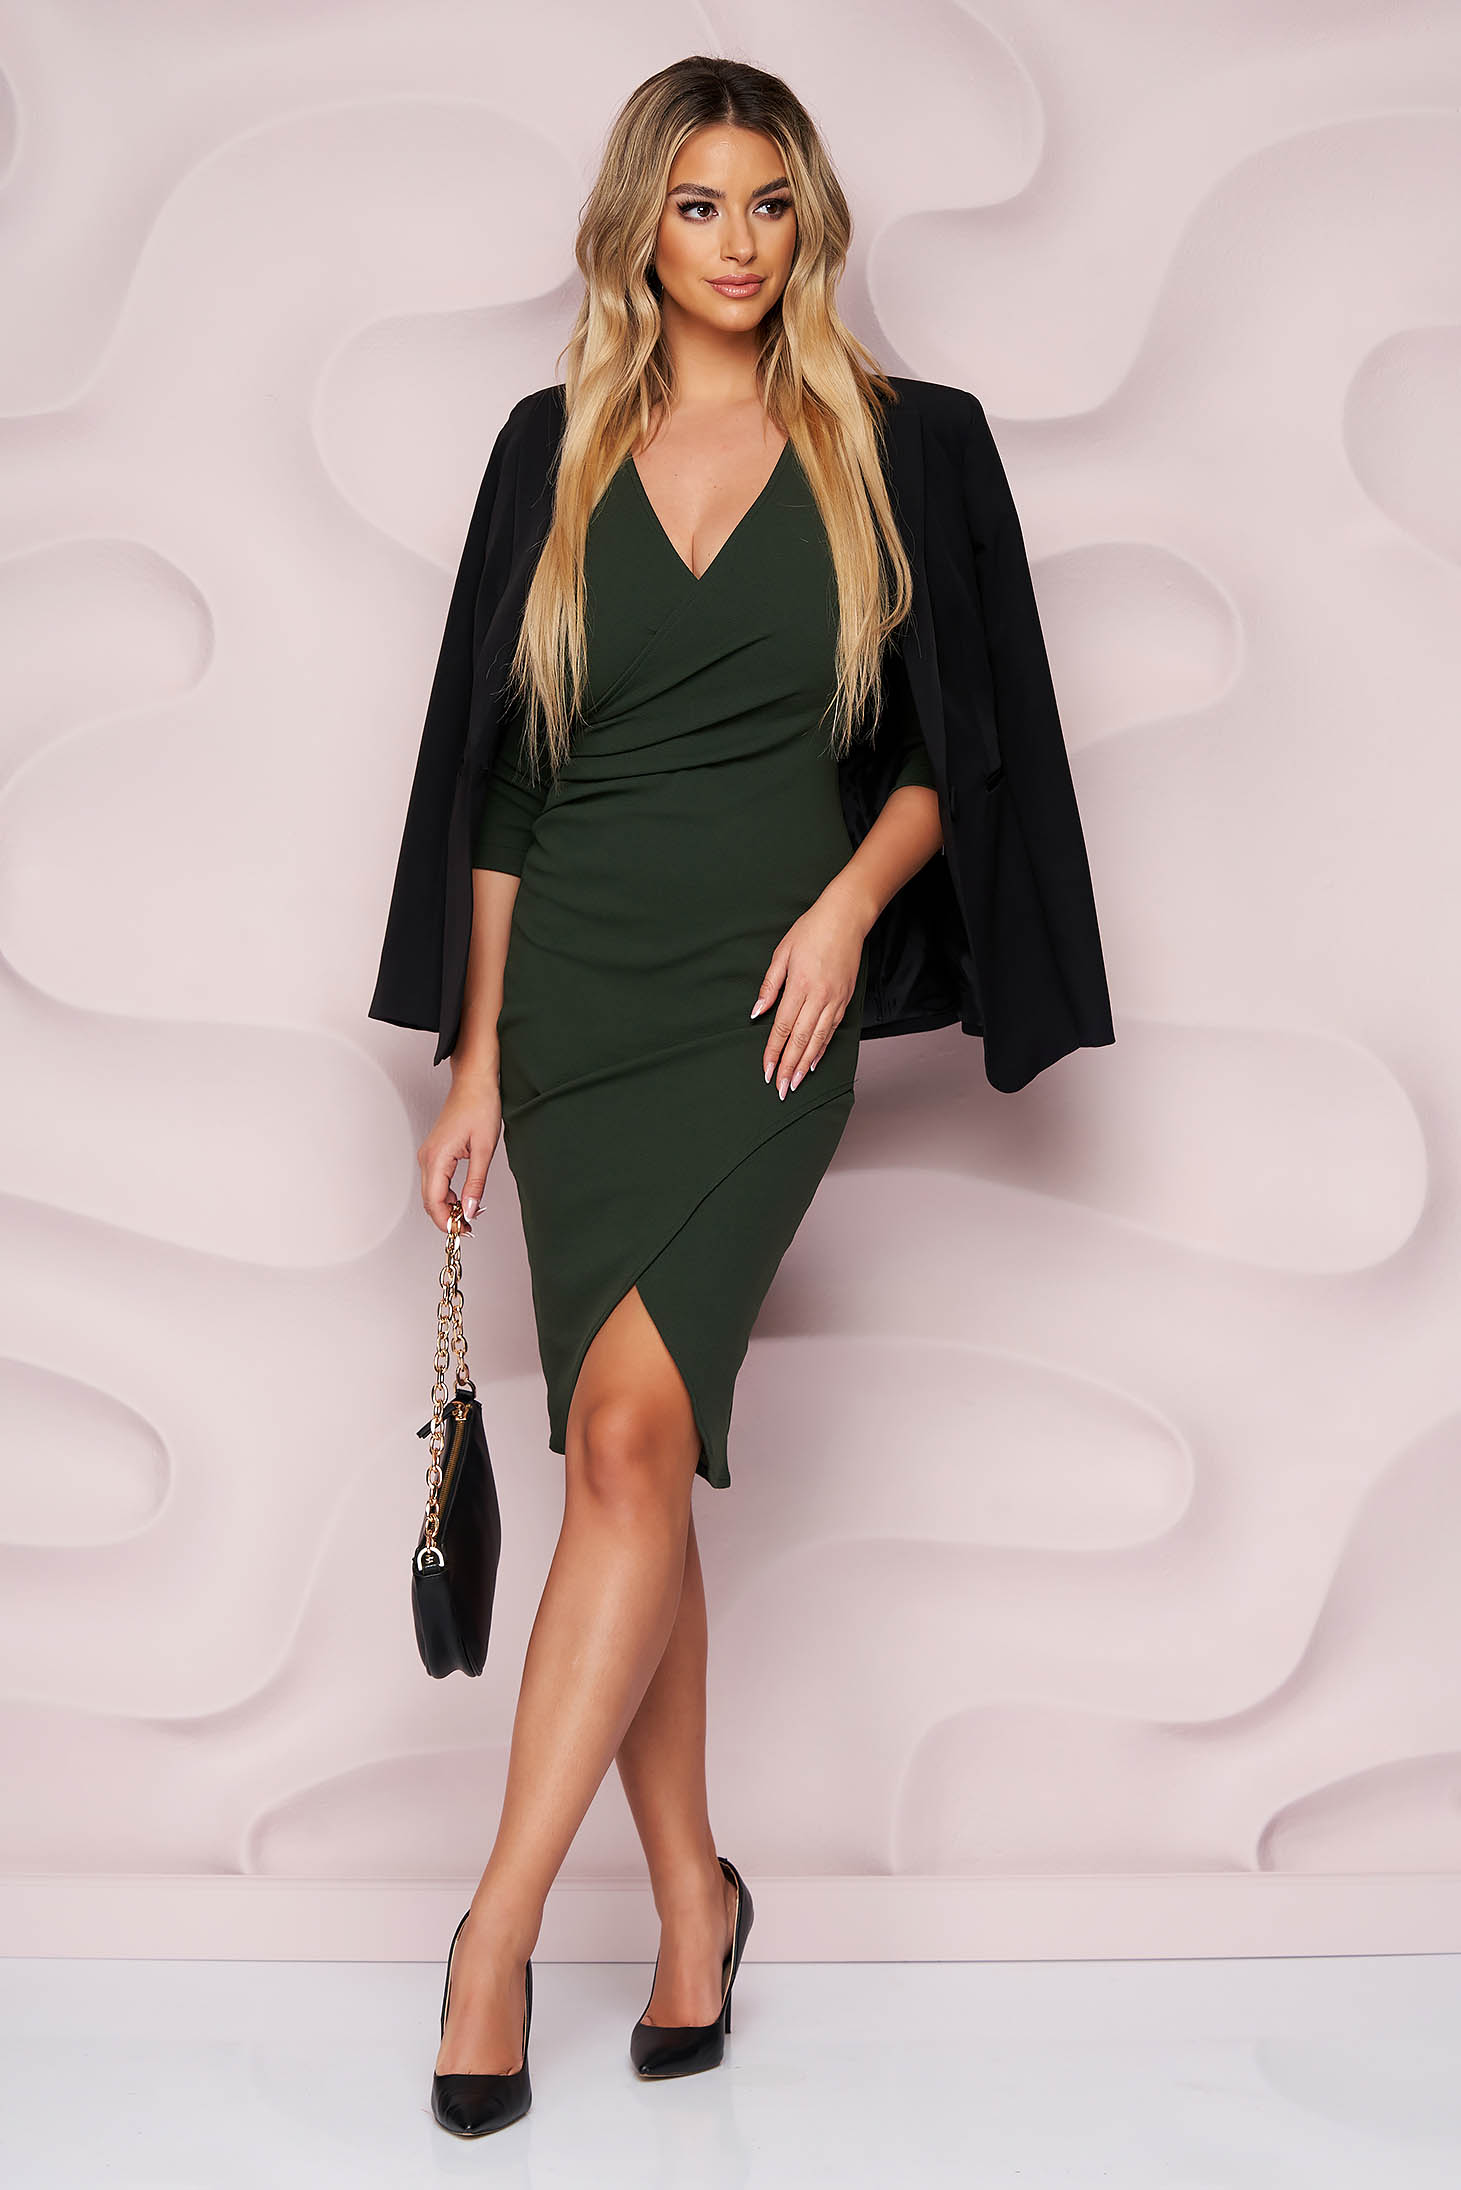 Rochie StarShinerS verde-inchis office midi tip creion din material elastic cu decolteu in v